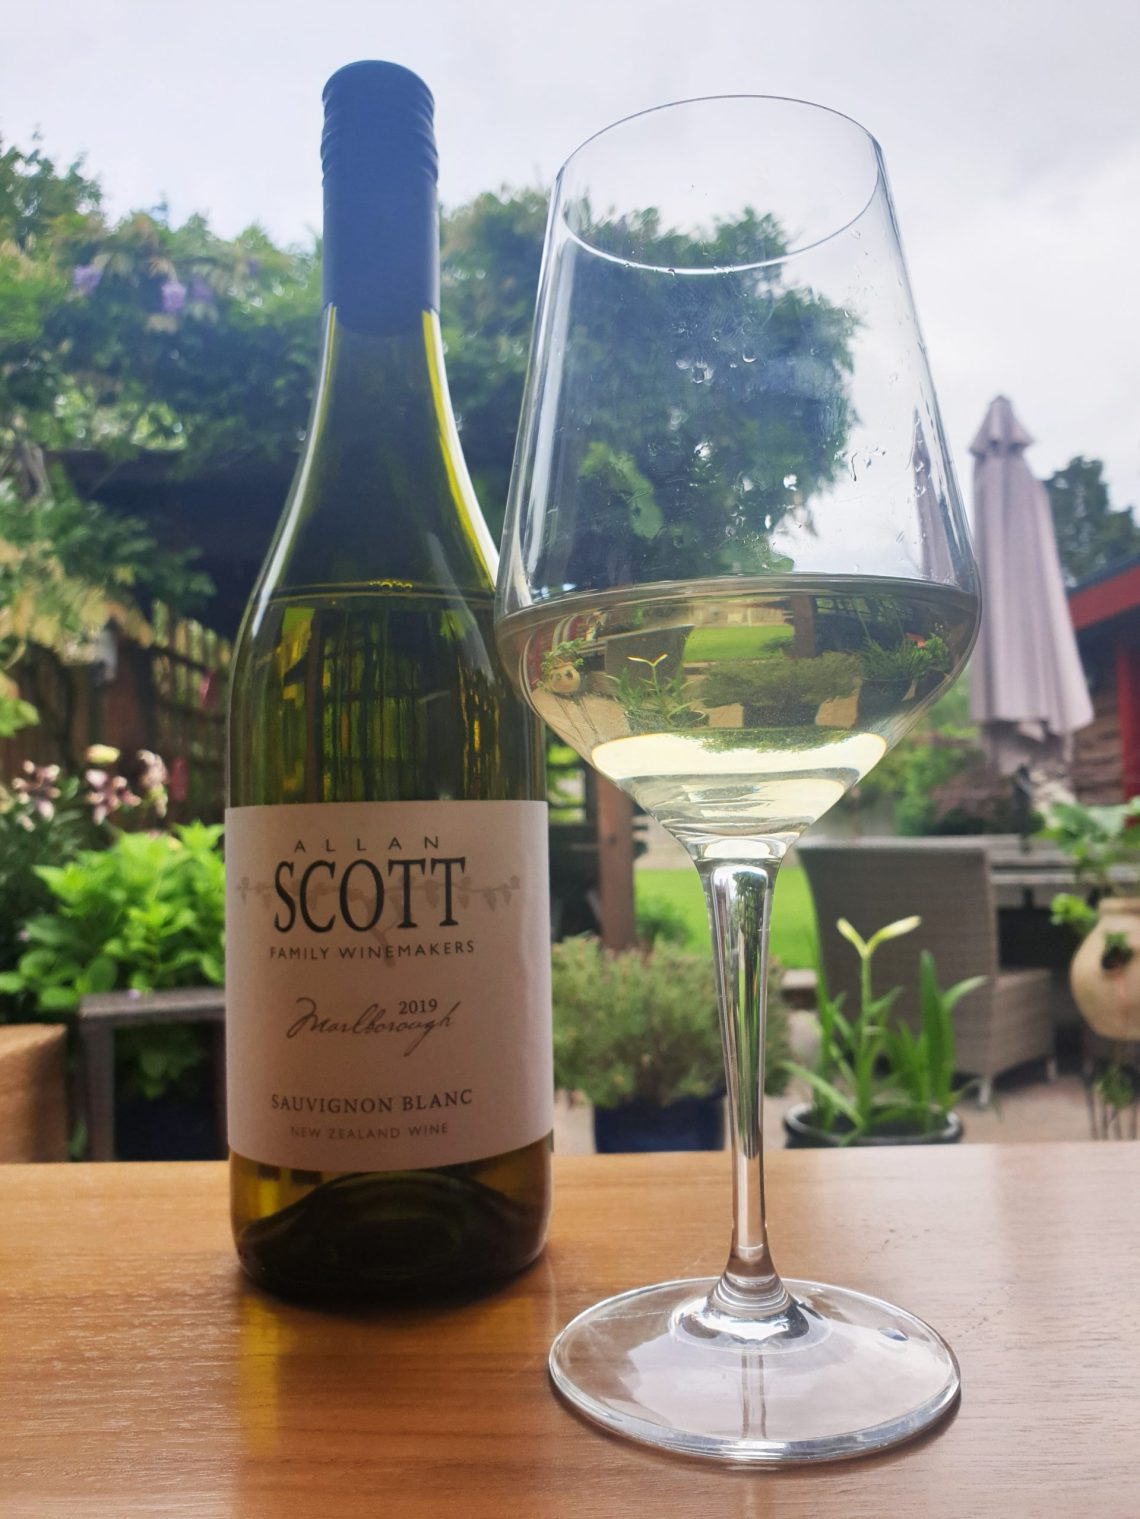 Allan Scott Family Winemakers Sauvignon Blanc.